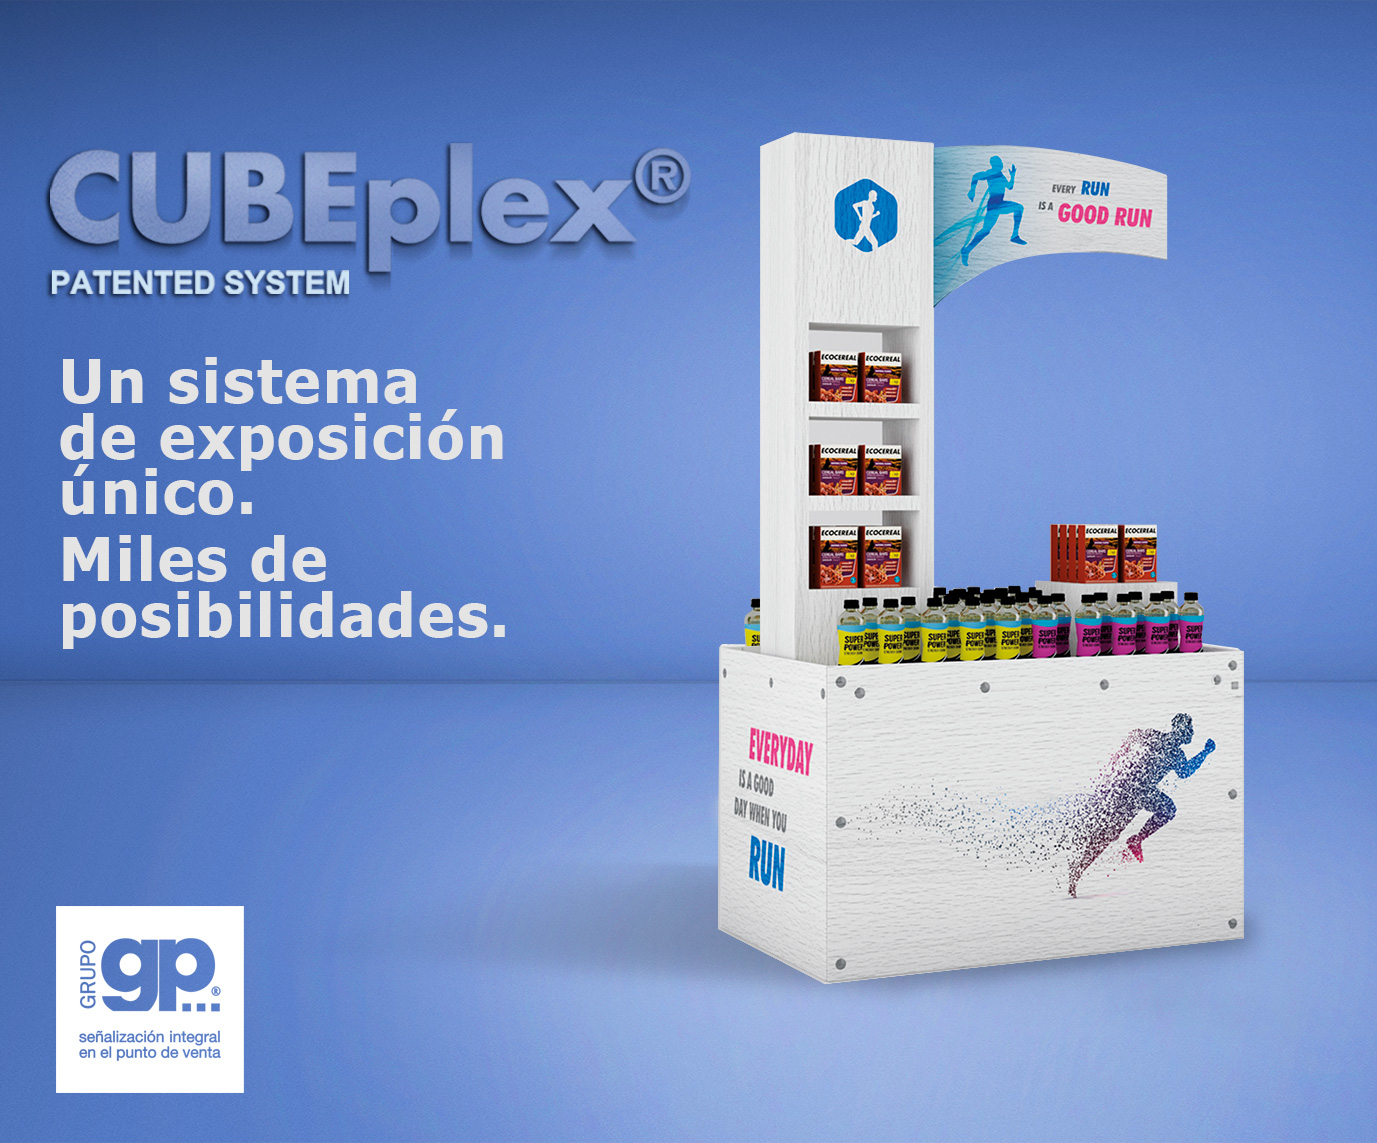 Cubeplex_expositor_producto